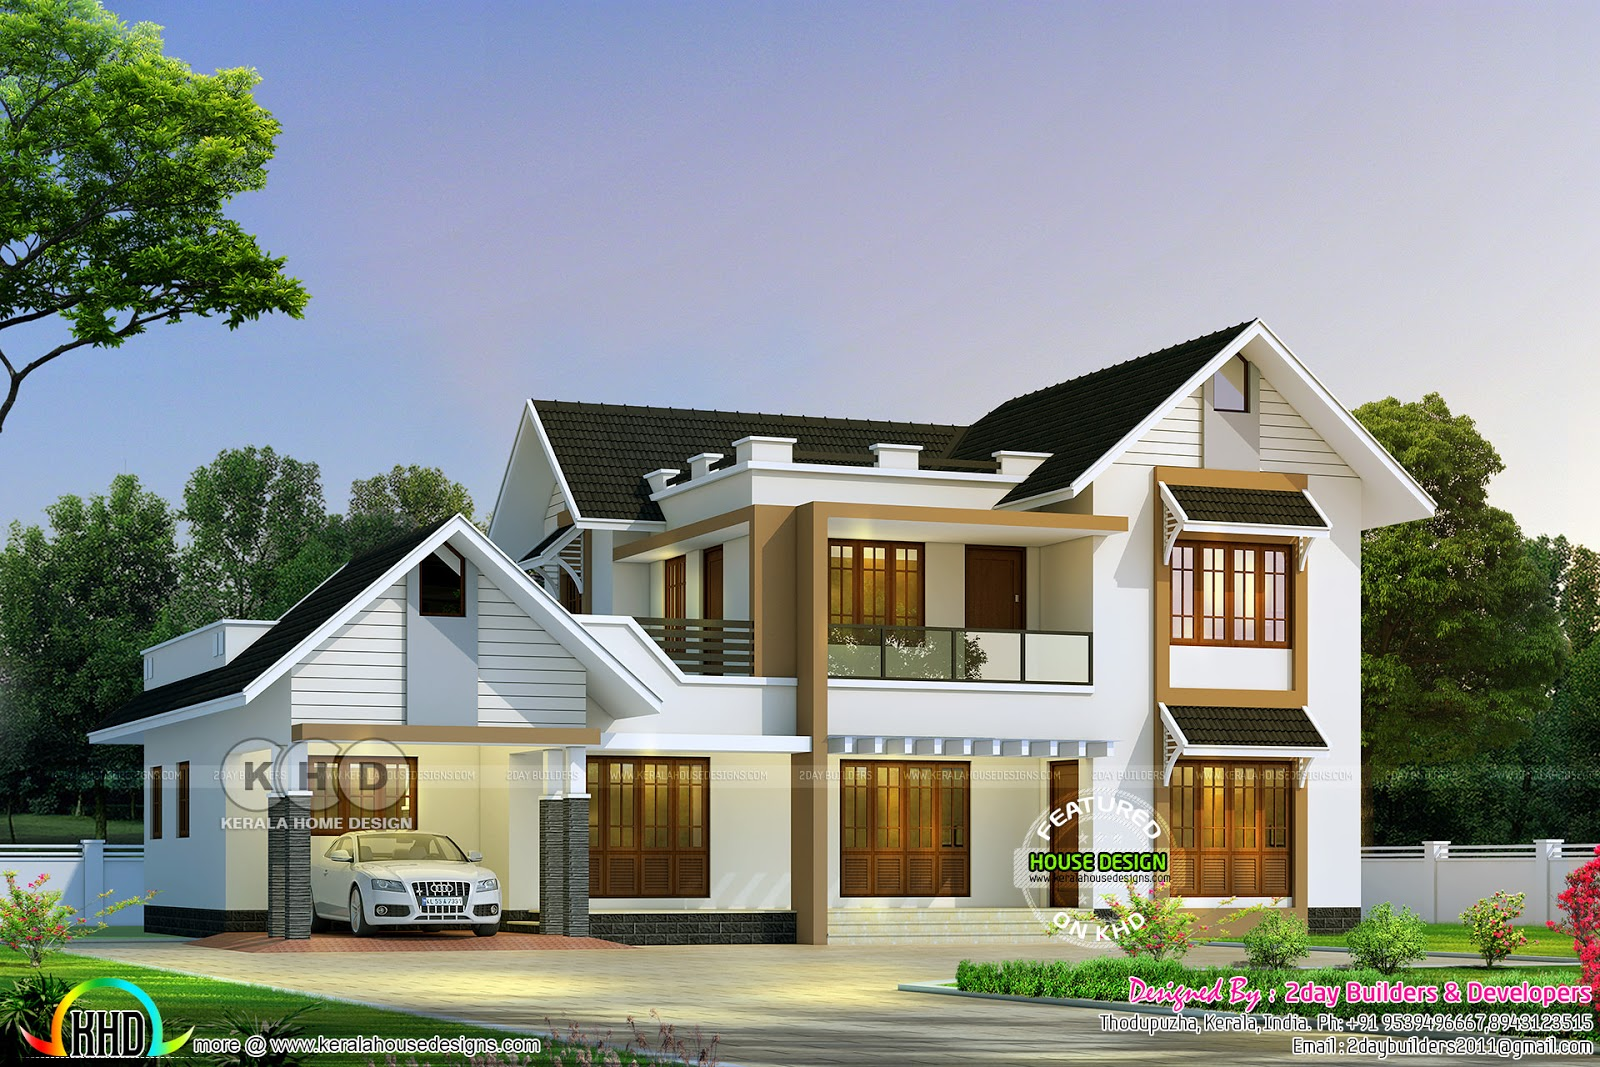 2017 kerala home design and floor plans for Remodel house plans